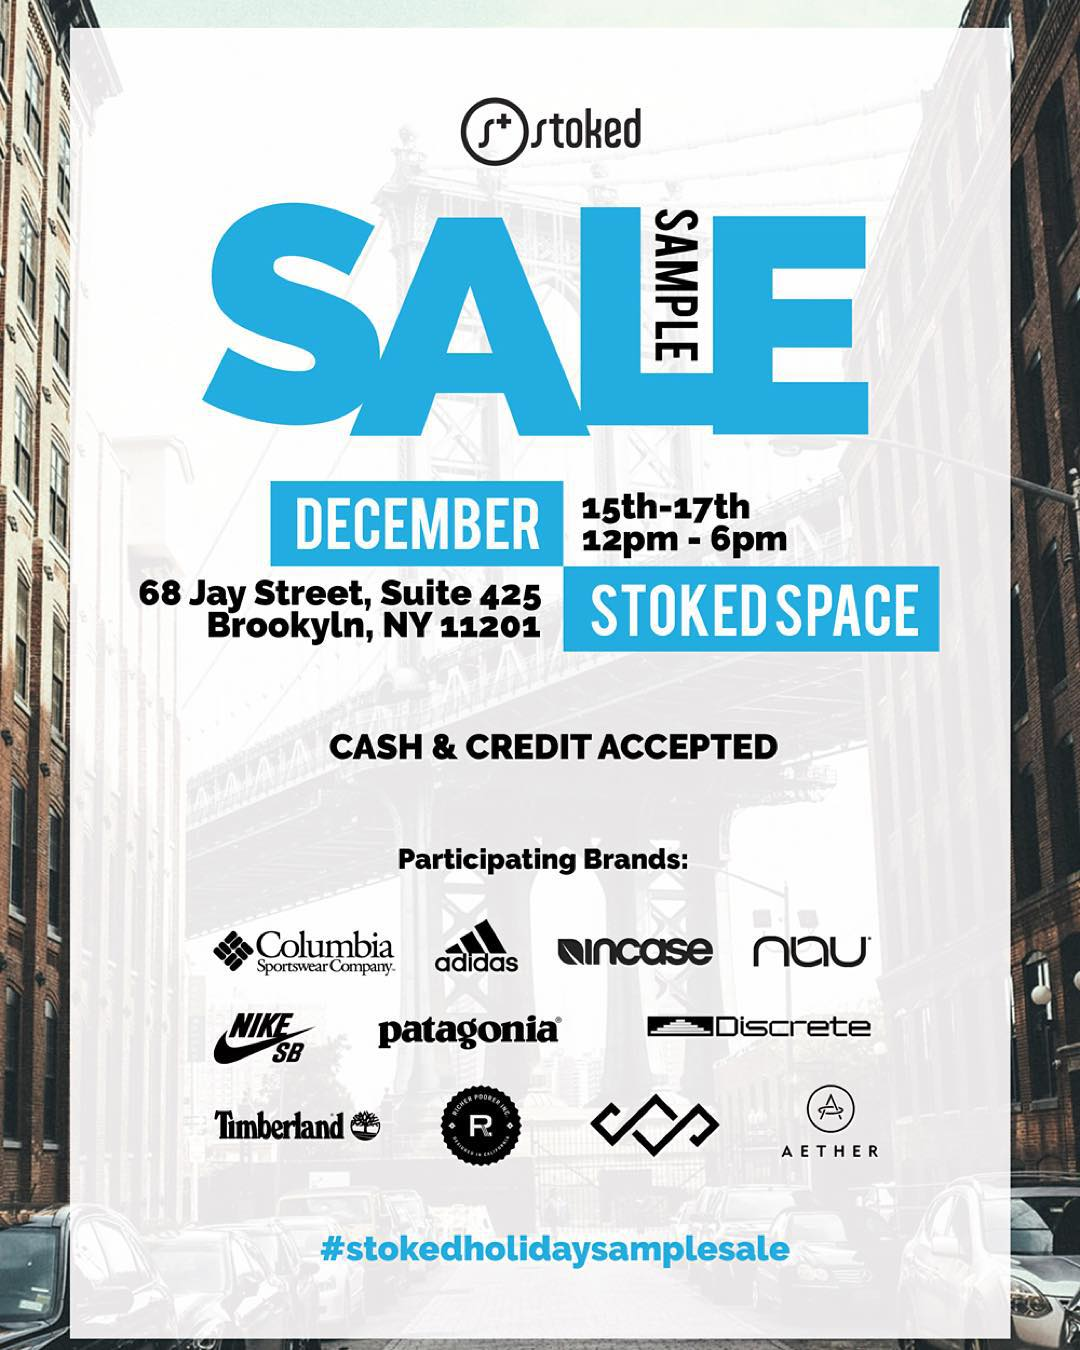 NYC get ready to shop! We're having a sample sale Dec 15,16 & 17 at the Stoked Space.  Get discounted goods from @columbia1938 @adidas @goincase @nauclothing @nikesb @patagonia @discreteclothes @timberland @richerpoorer @sheshredsco @aetherapparel!...